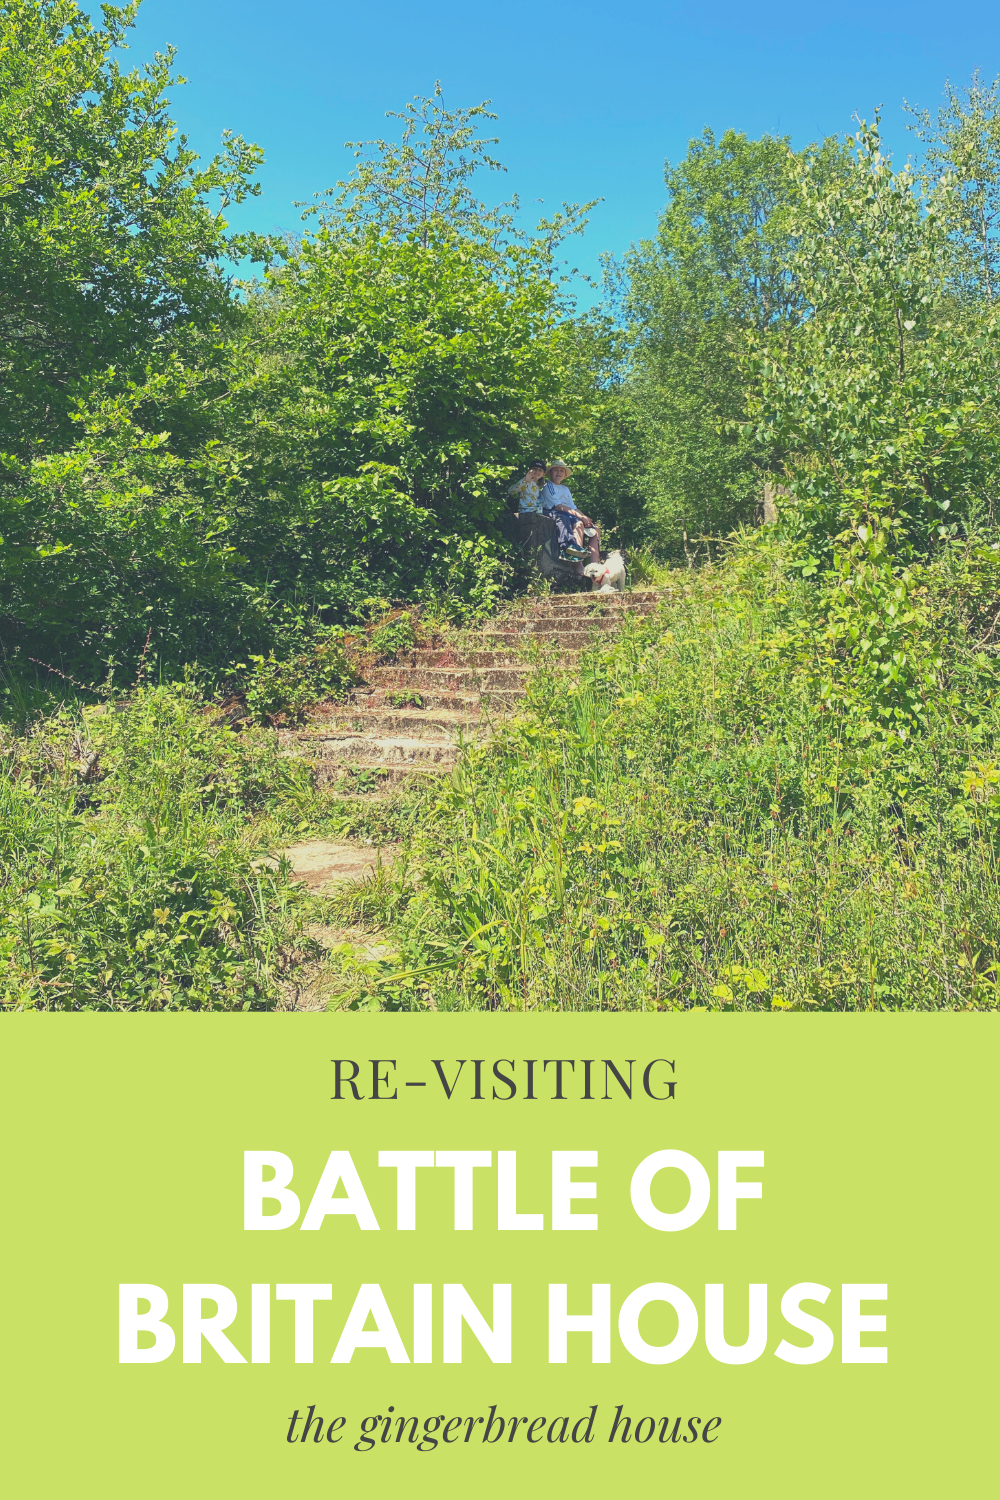 Re-visiting the Battle of Britain House Ruislip